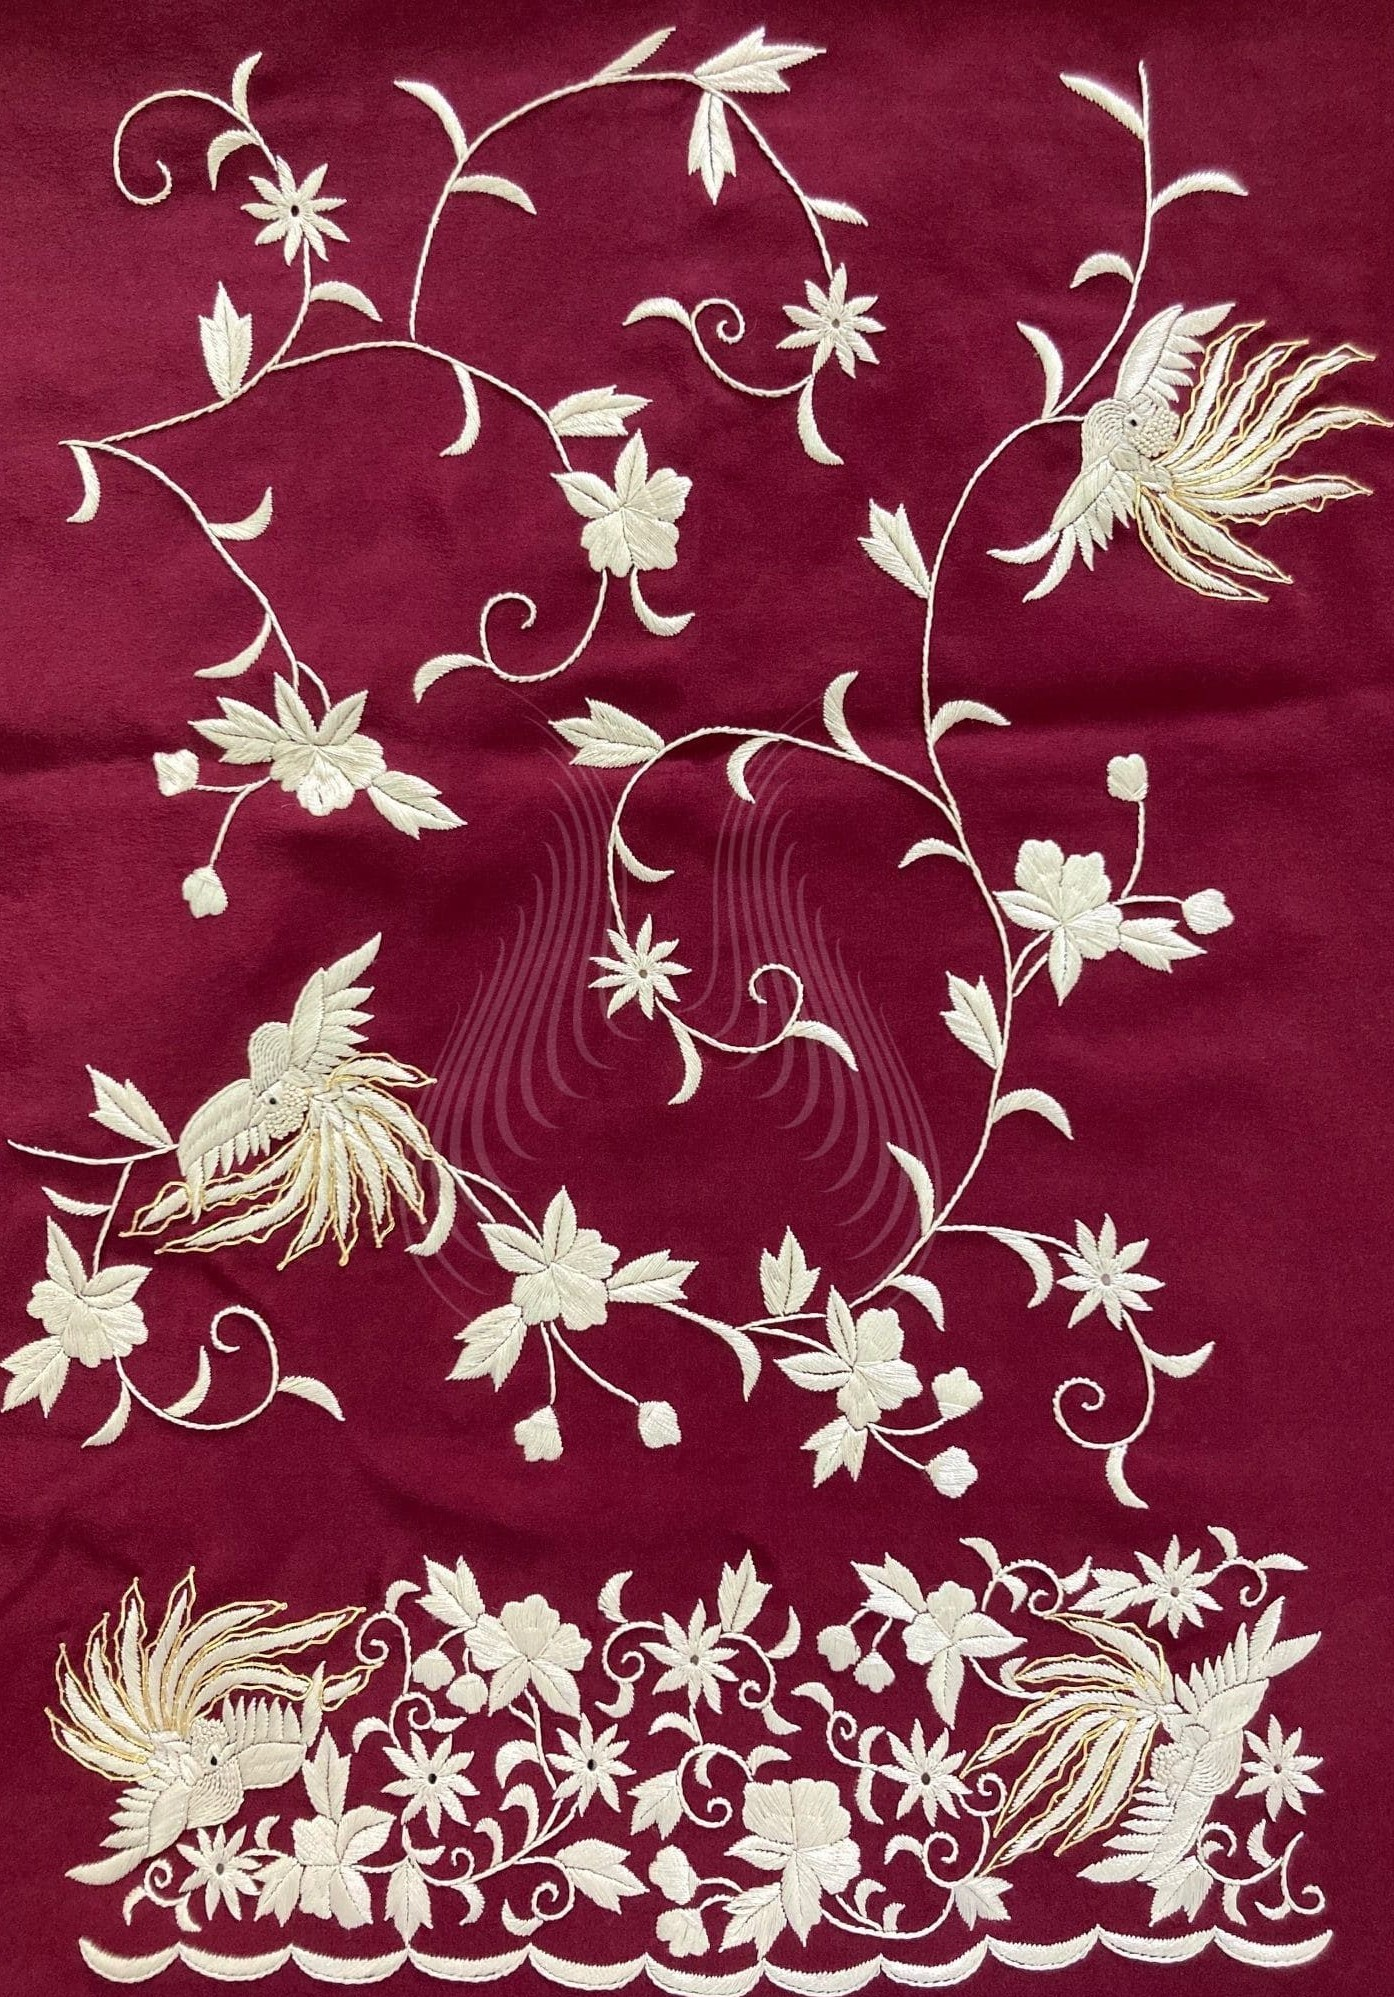 Bird of Paradise Motif with flowers (G107)